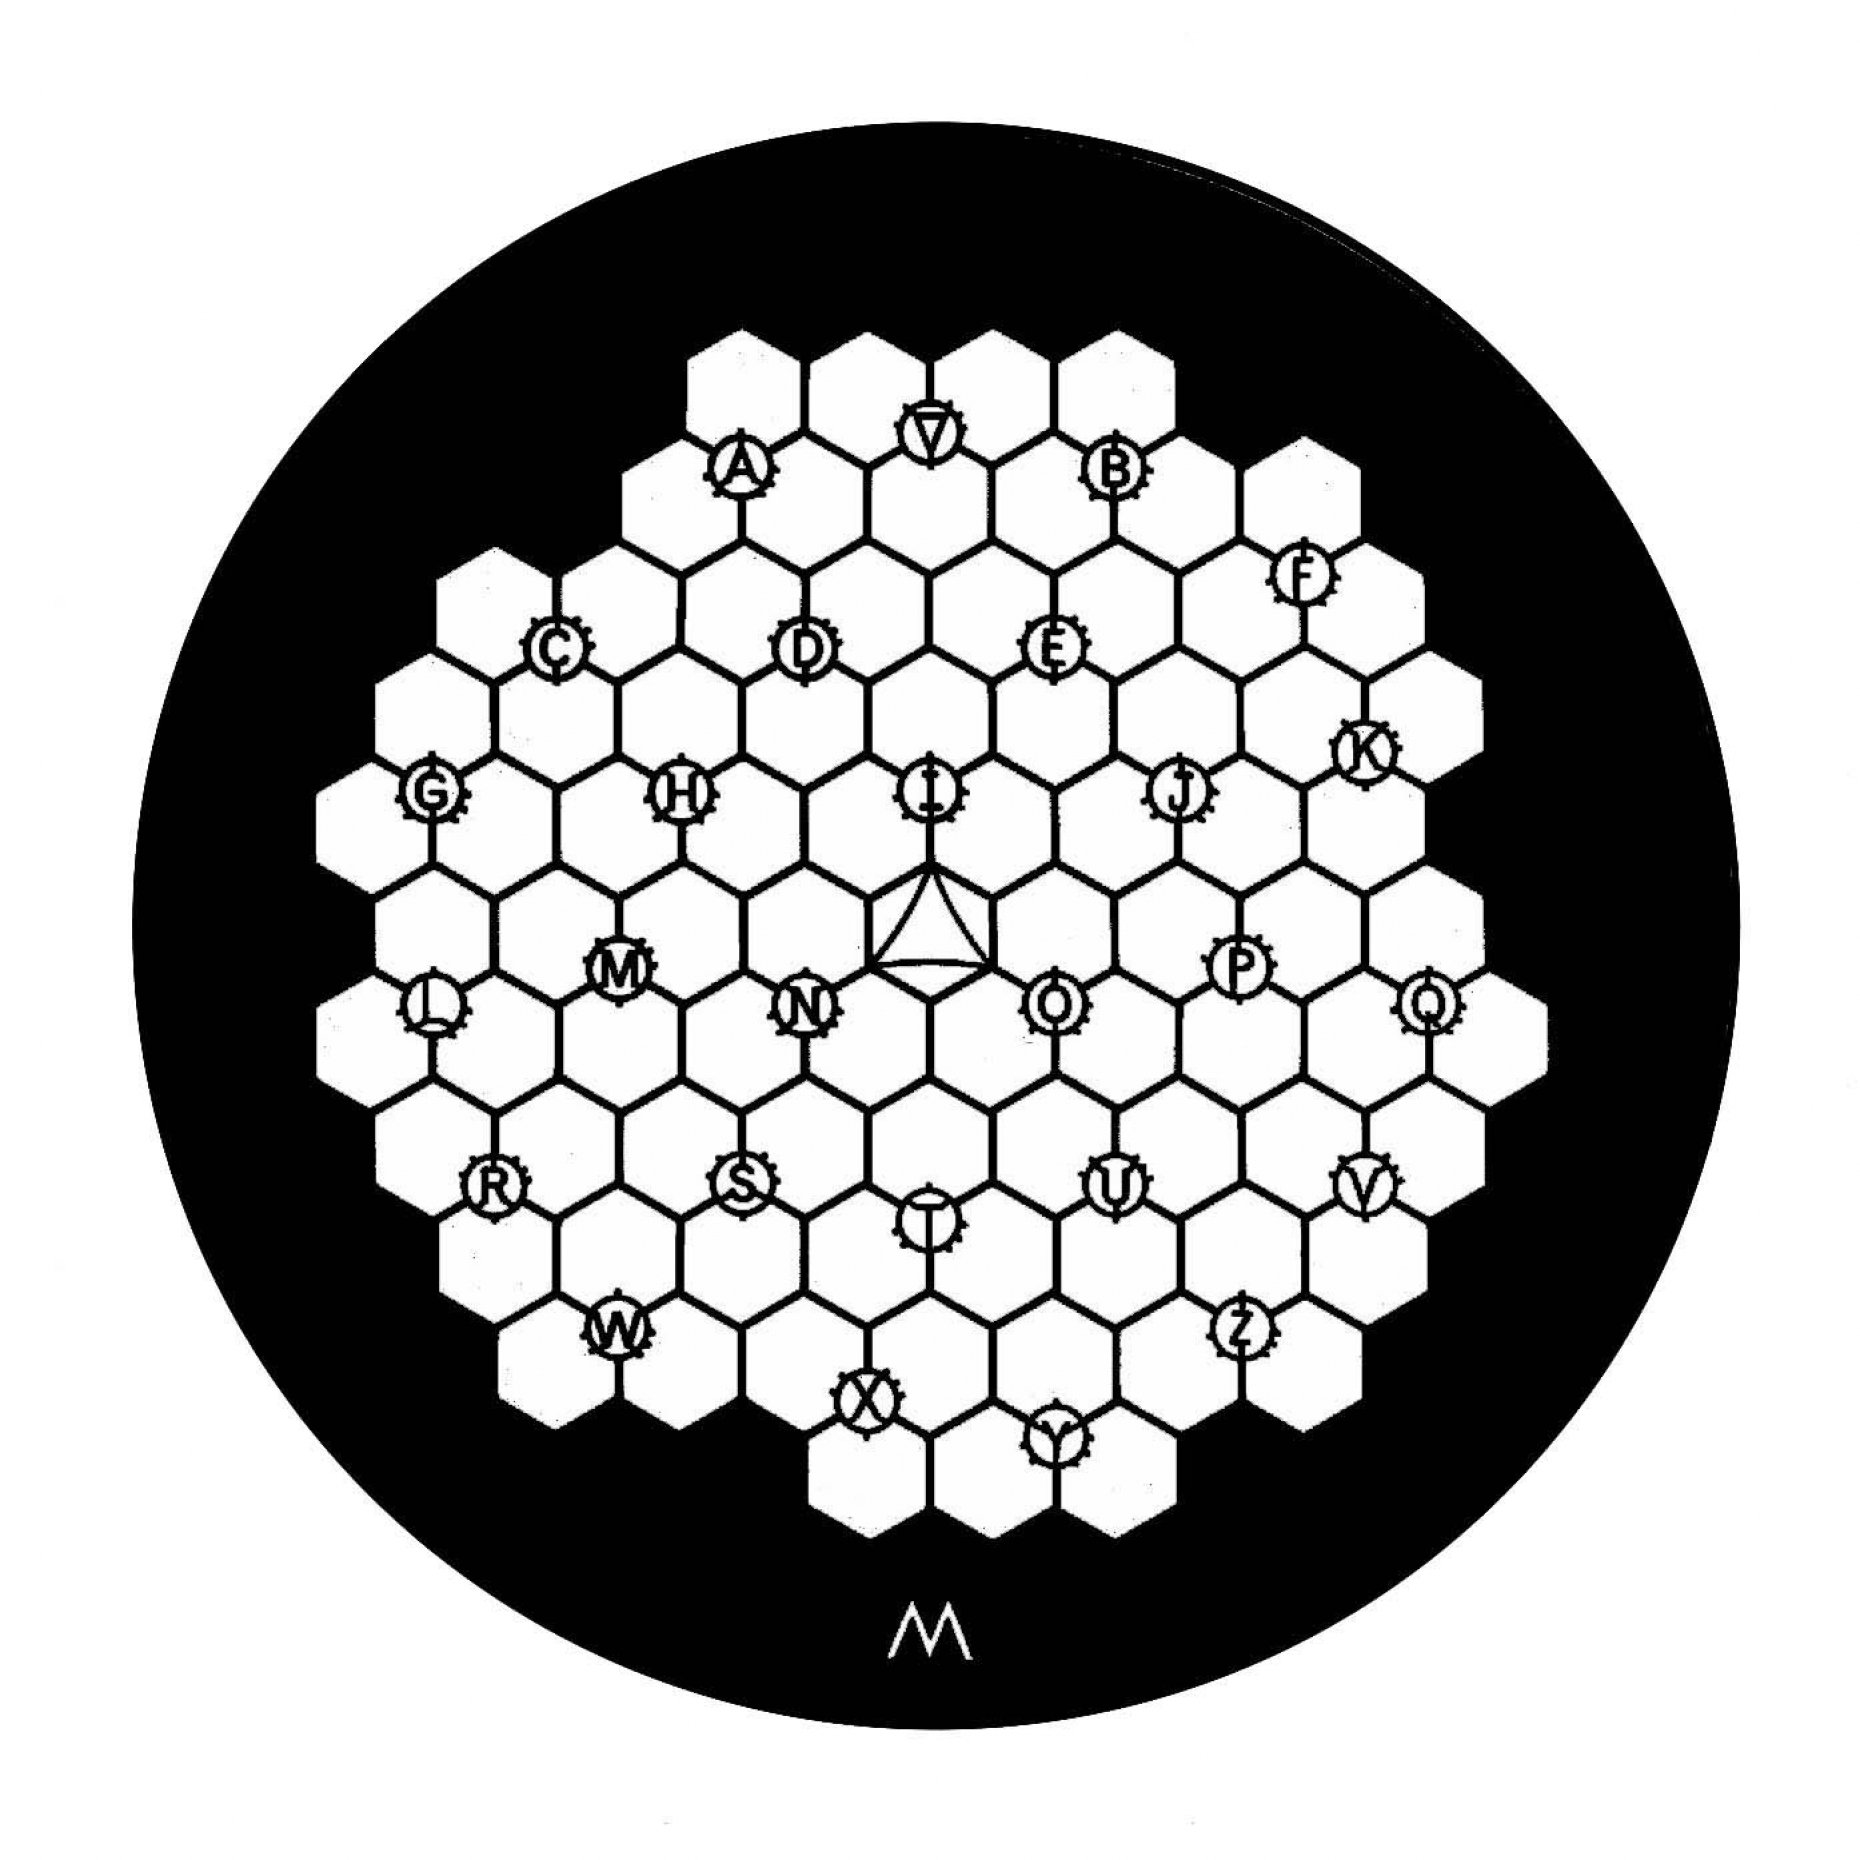 100 Mesh Hexagonal Reference Grid